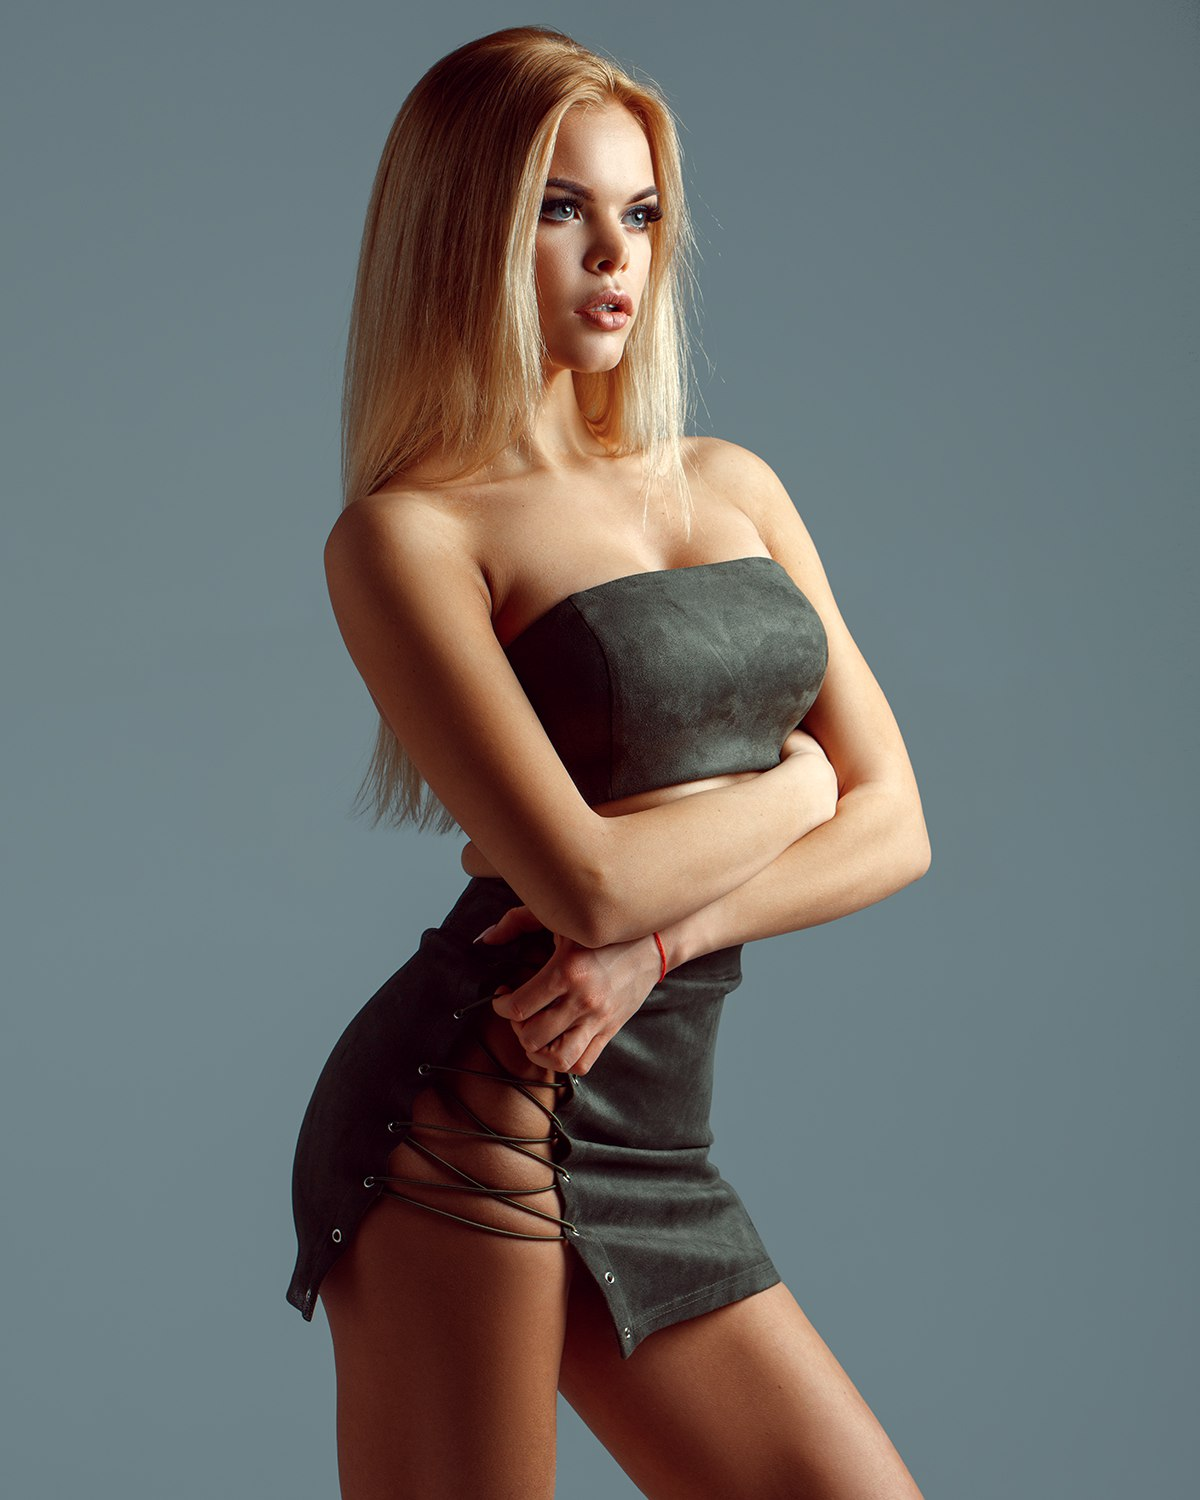 People 1200x1500 Aleksey Trifonov simple background women model blonde arms crossed long hair bare shoulders looking into the distance blue background